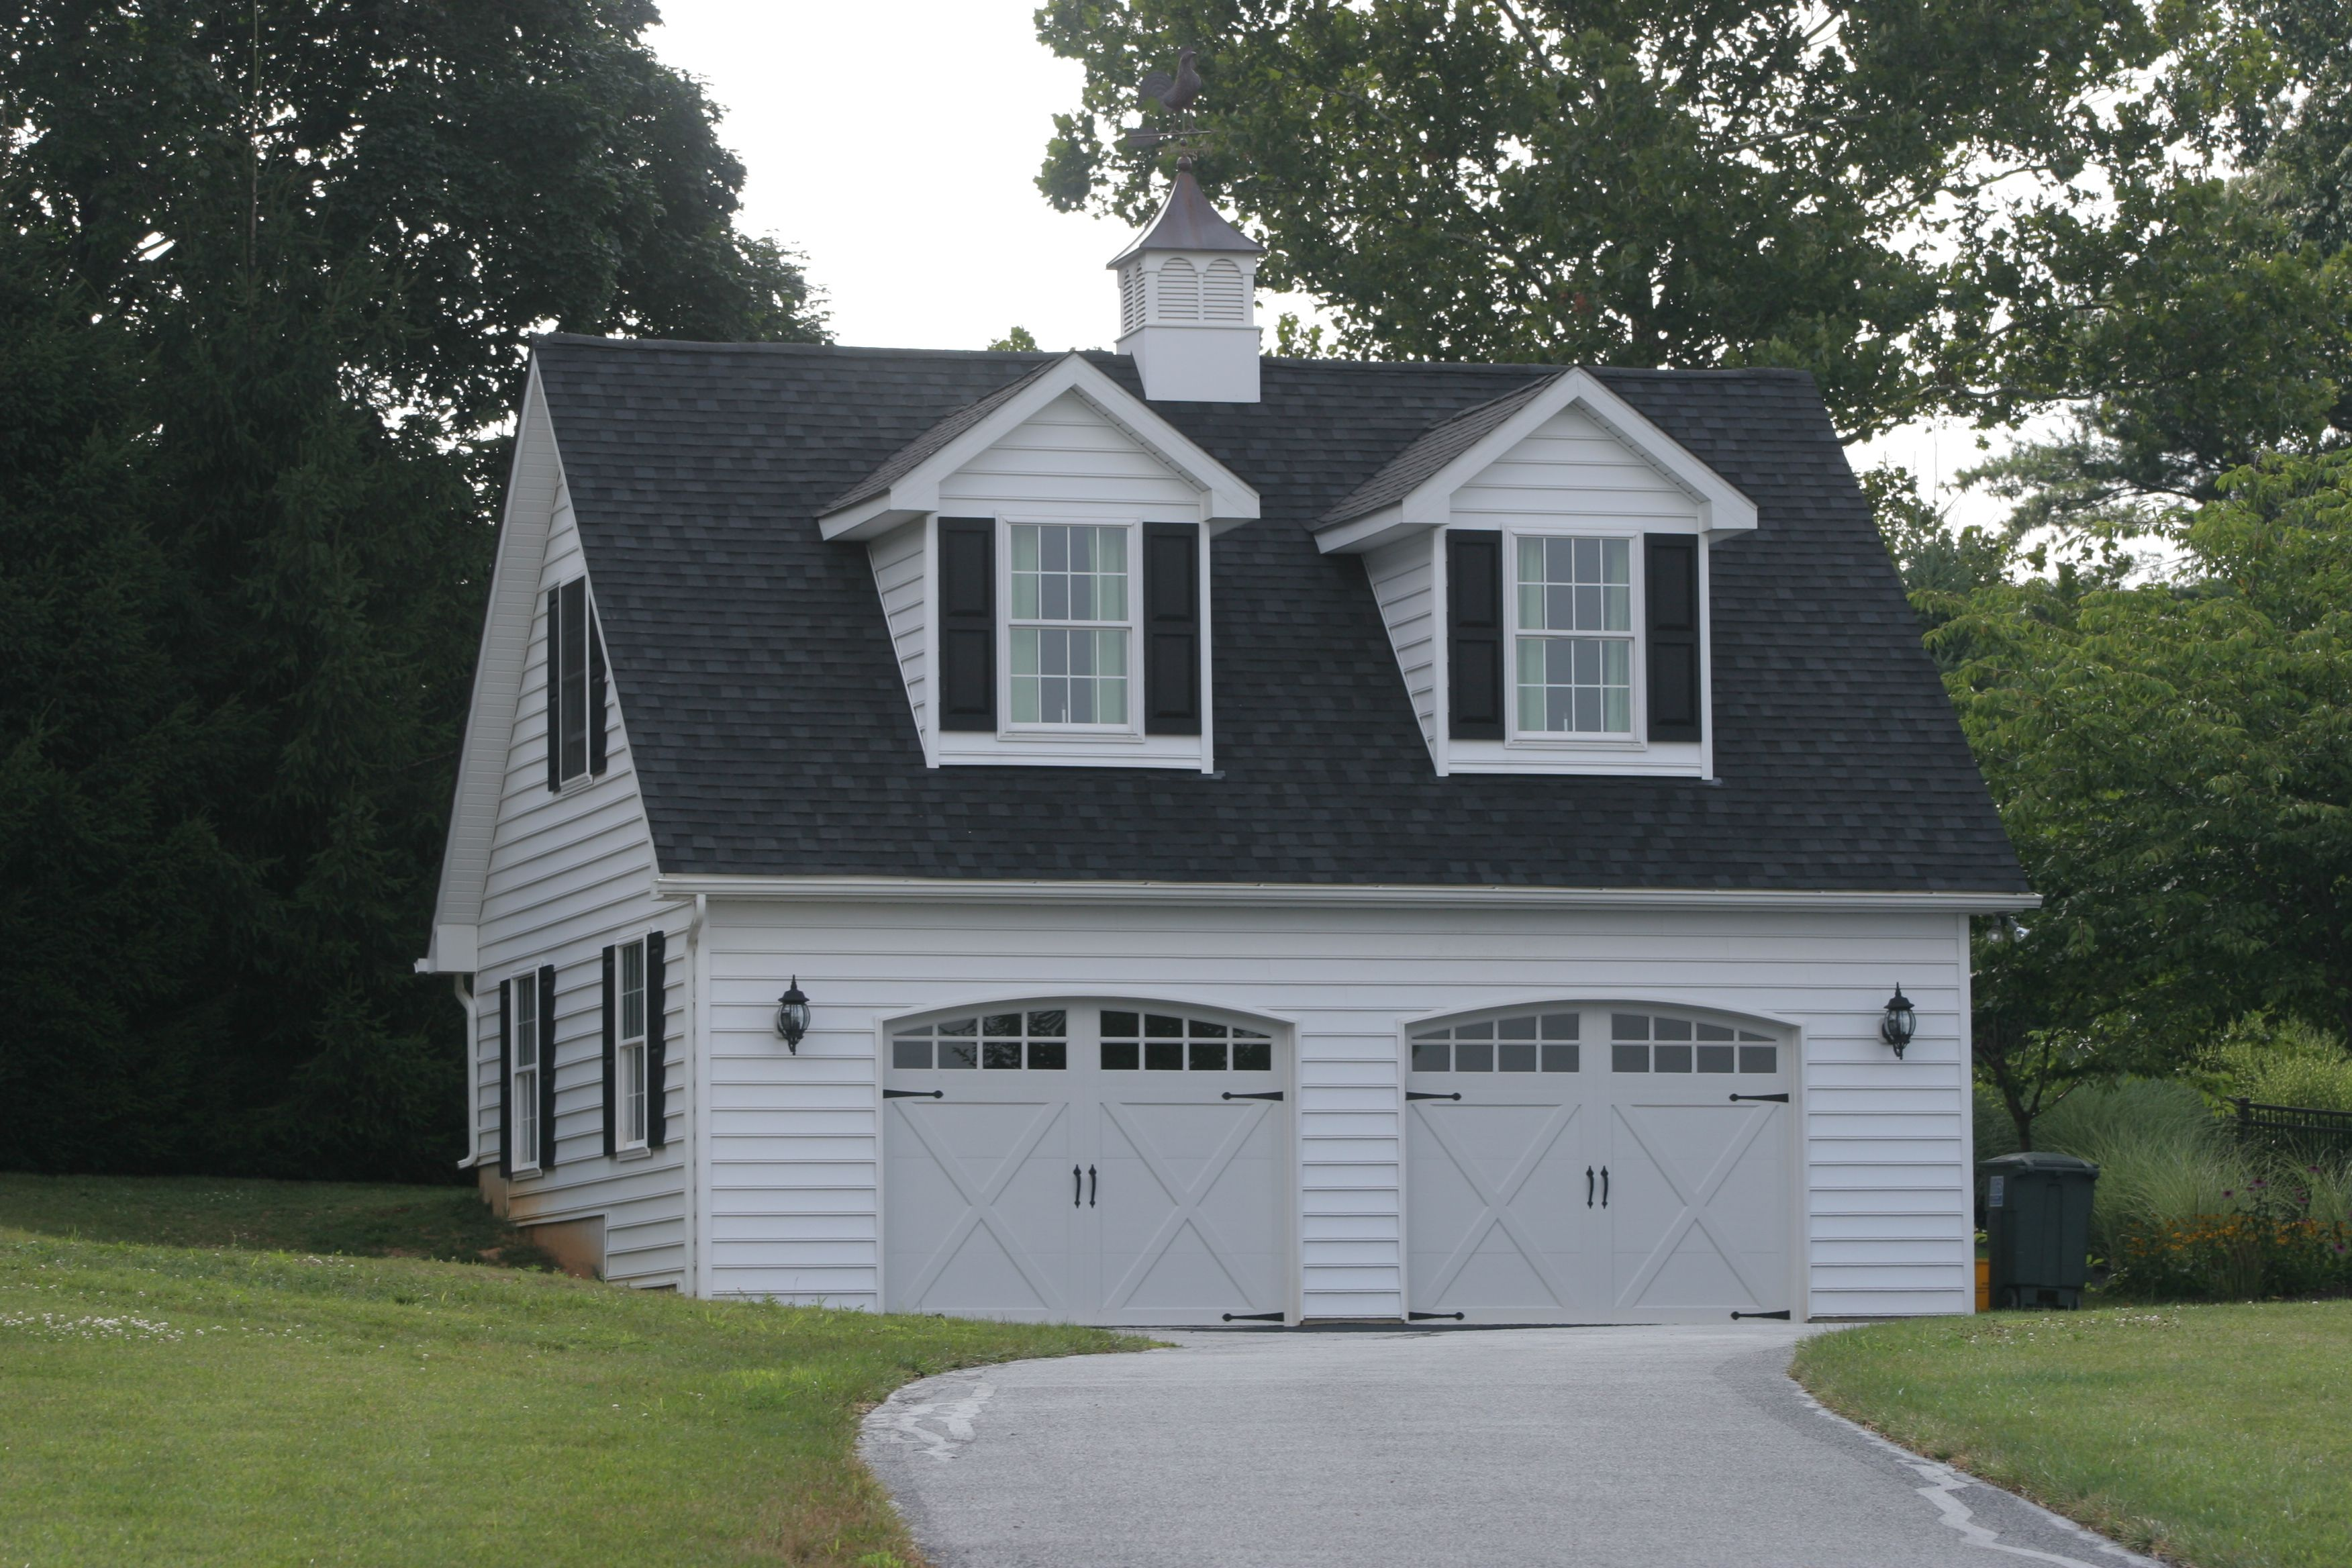 Detached two car garage in finksburg md design build for Garage md auto